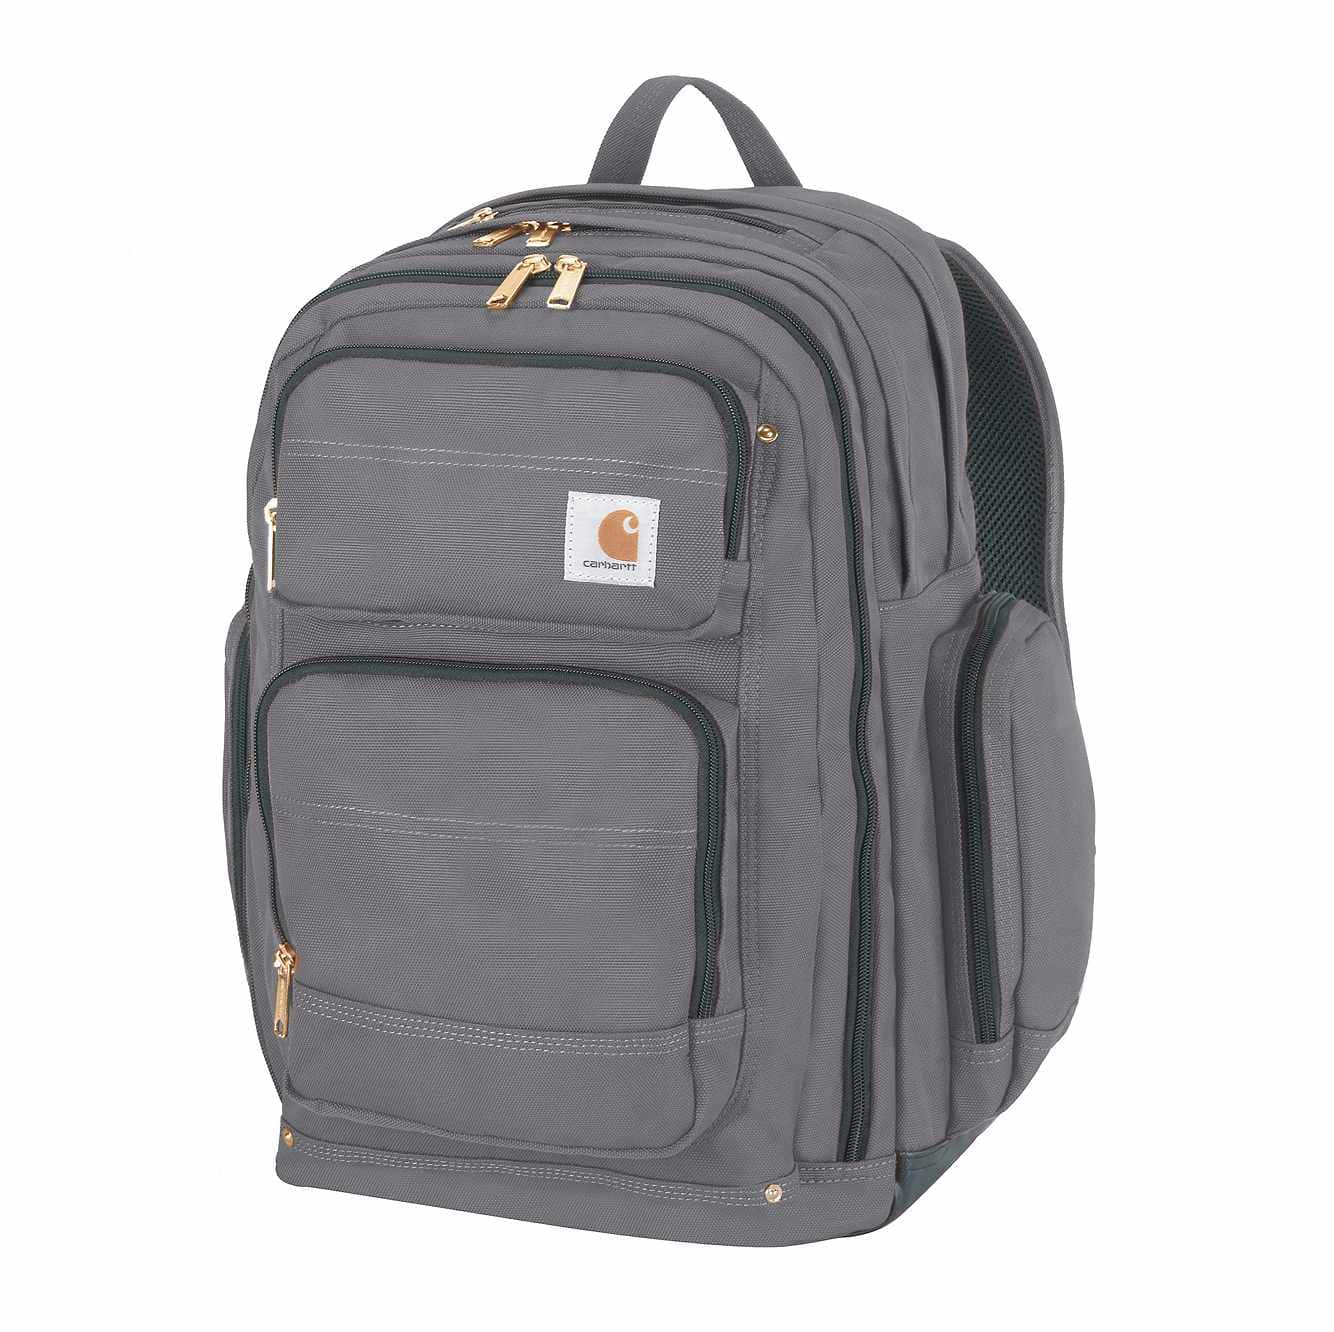 Picture of Legacy Deluxe Work Pack in Gray